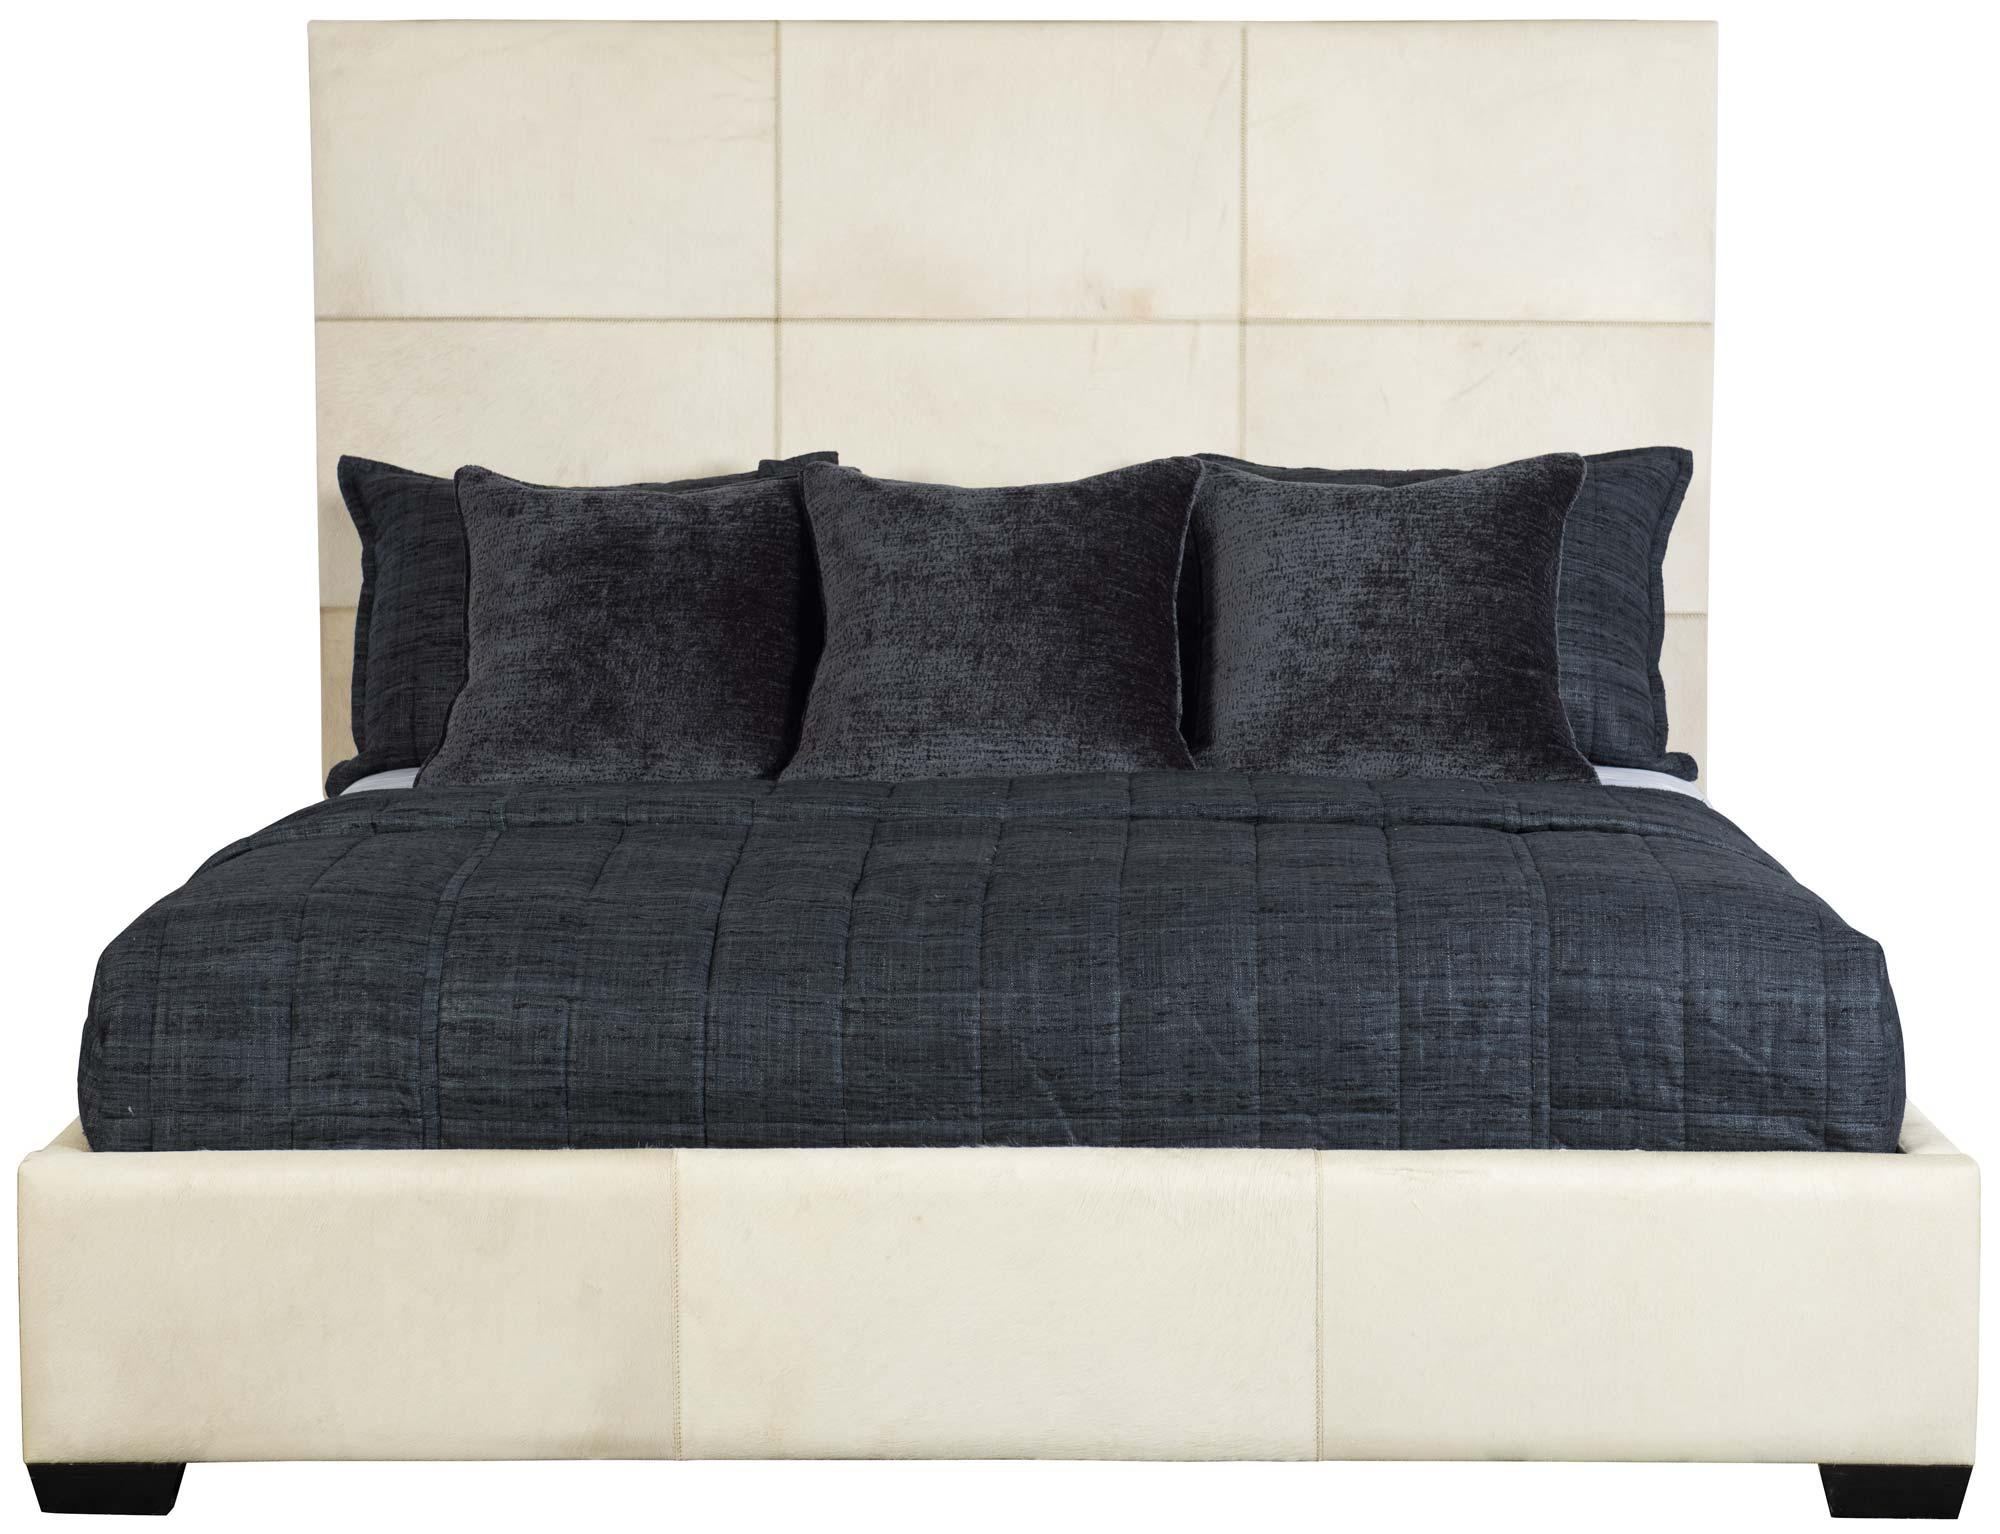 bernhardt bed assembly instructions